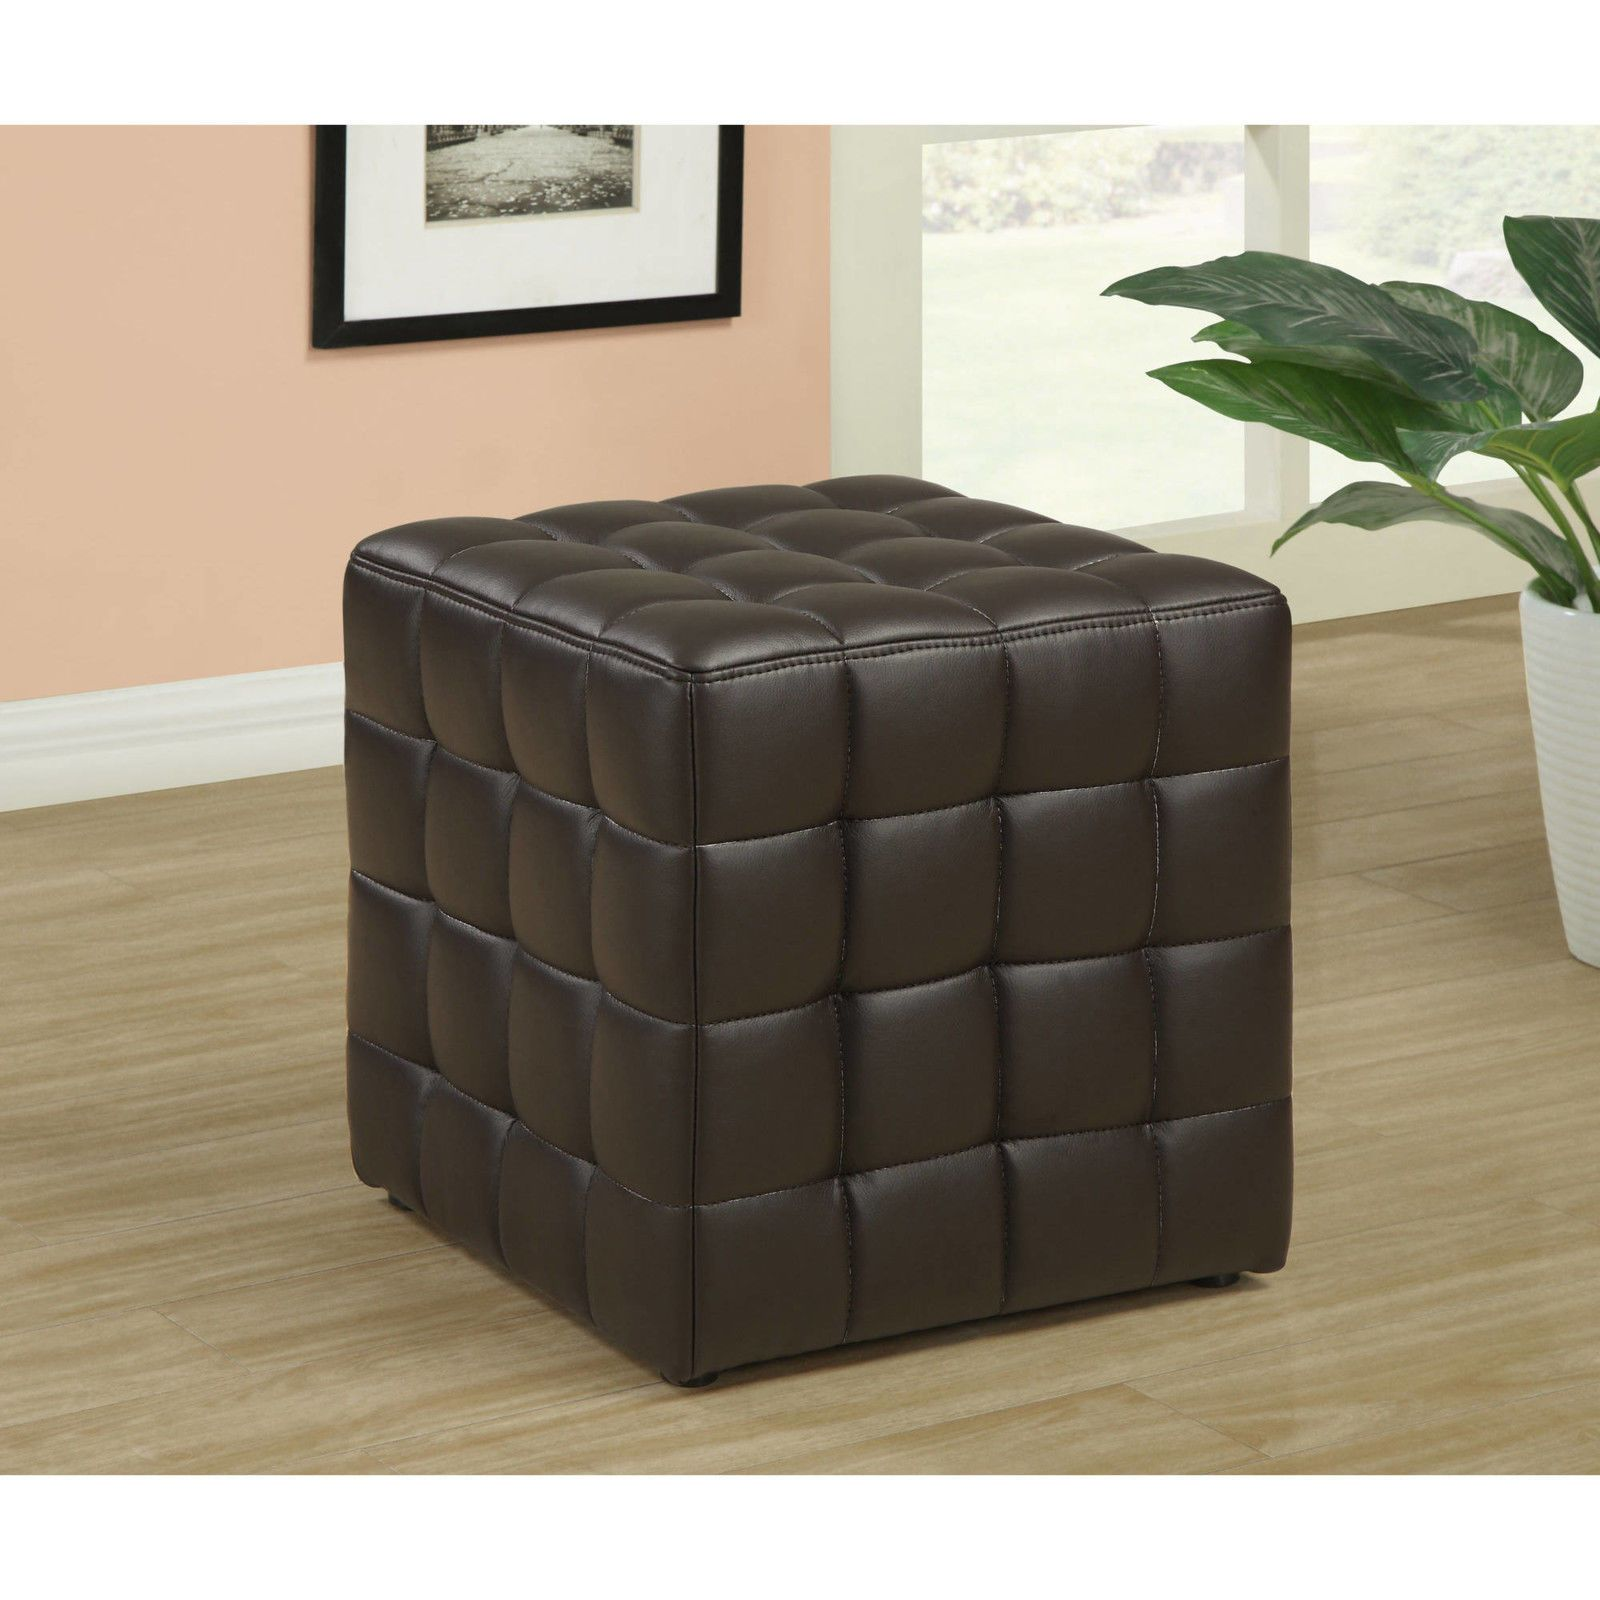 Brown Leather Ottoman Chair Tufted Seat Foot Bed Room